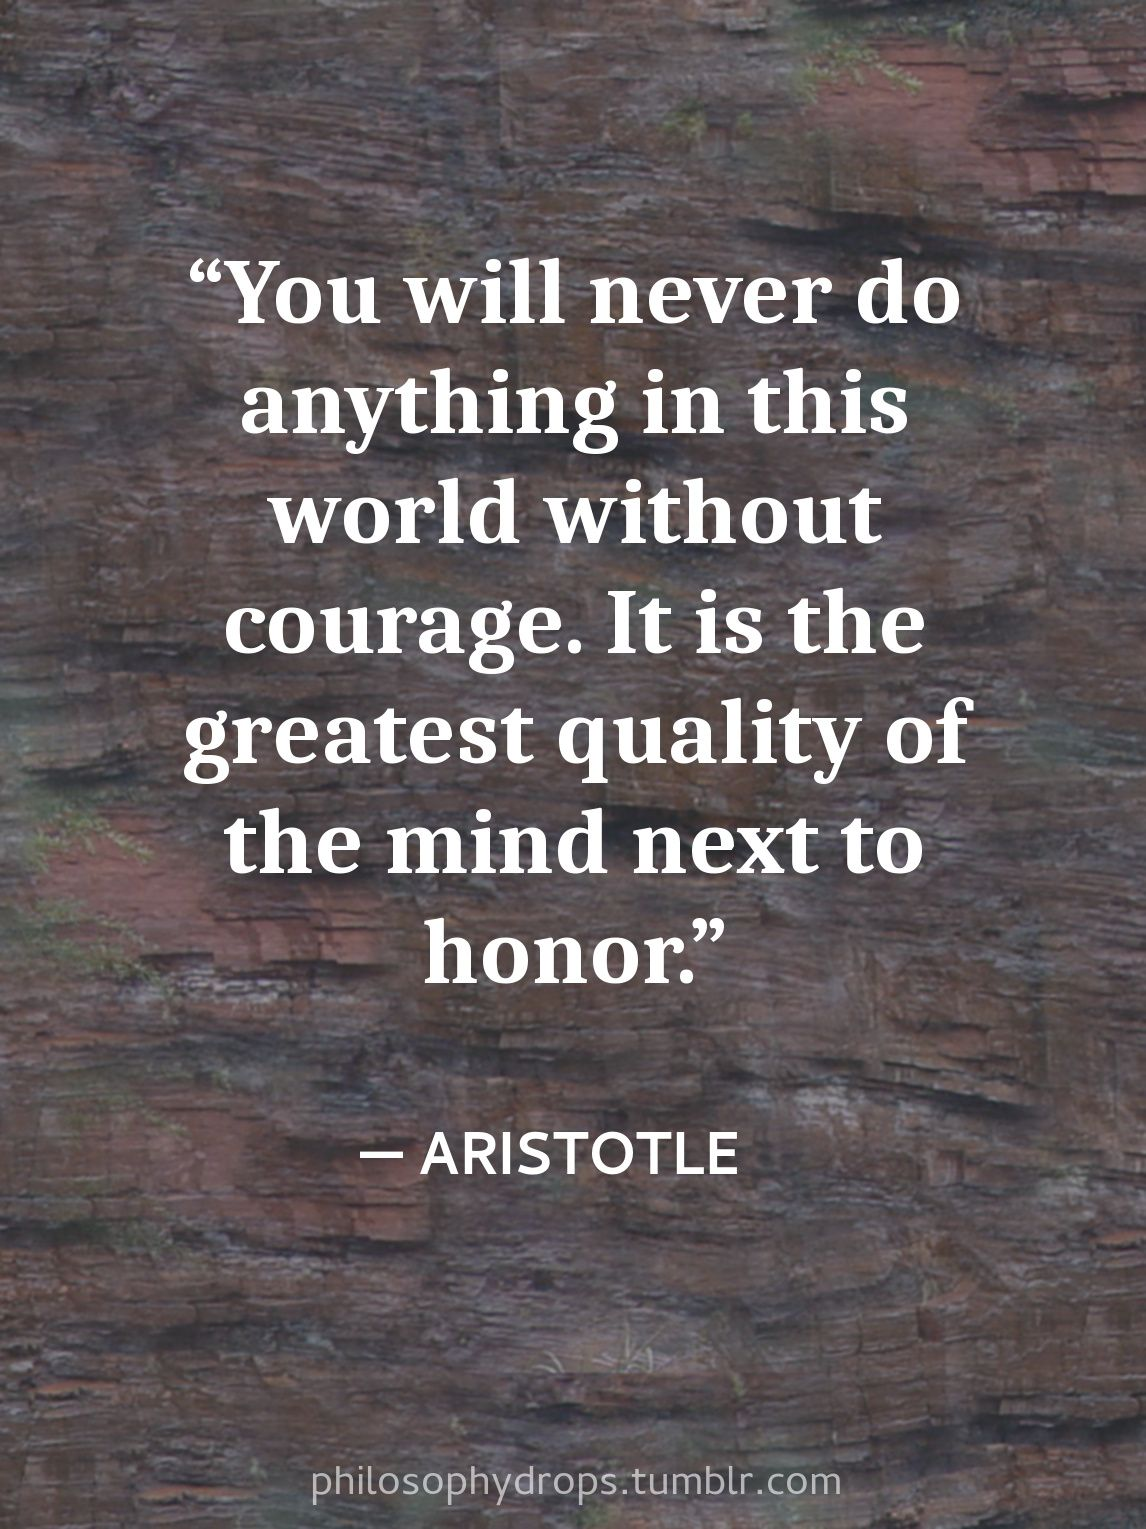 philosophy quotes Aristotle courage honor greatest quality photo quotes